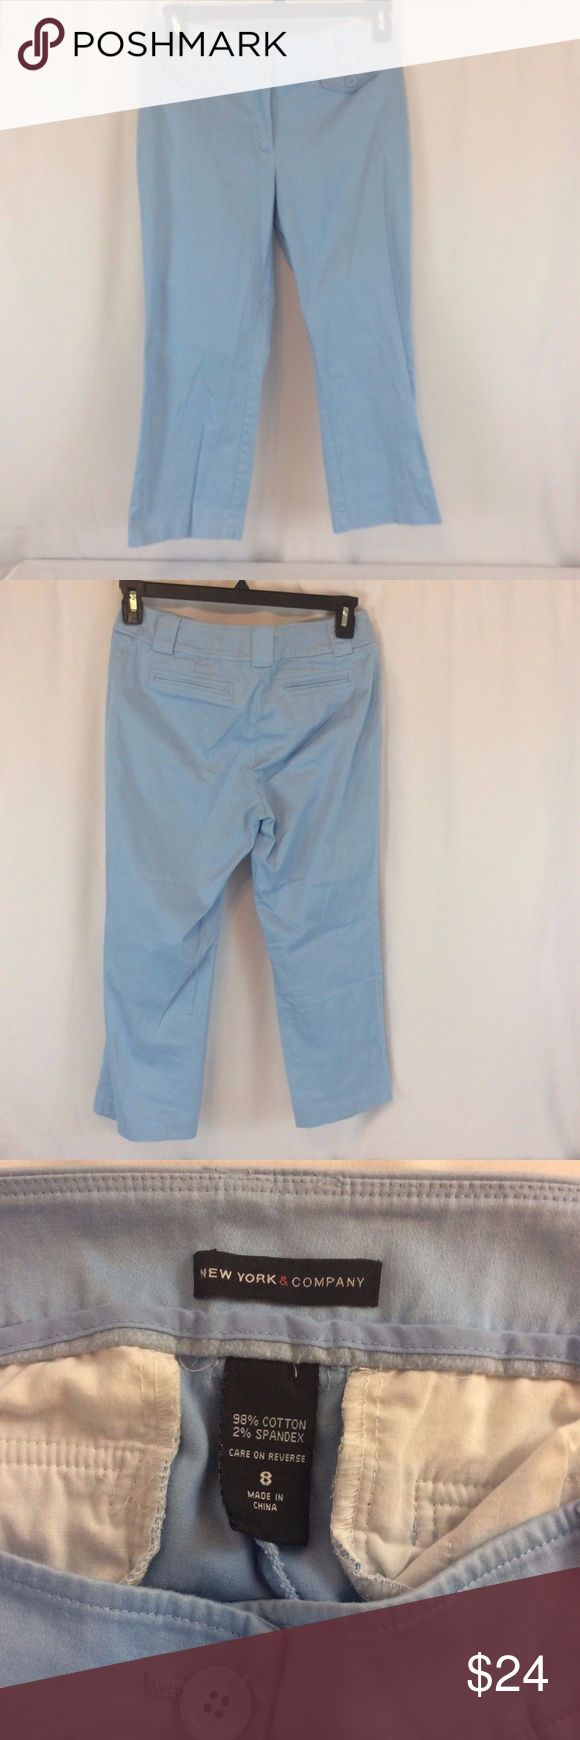 NEW YORK & COMPANY Blue Blend Womens Capri Pants NEW YORK & COMPANY Blue Cotton Blend Womens Capri Pants Size 8 Flat Front Gently used, see photos for details  Bottoms Size (Women's):8 Style:Capris, Cropped Size Type:Regular New York & Company Pants